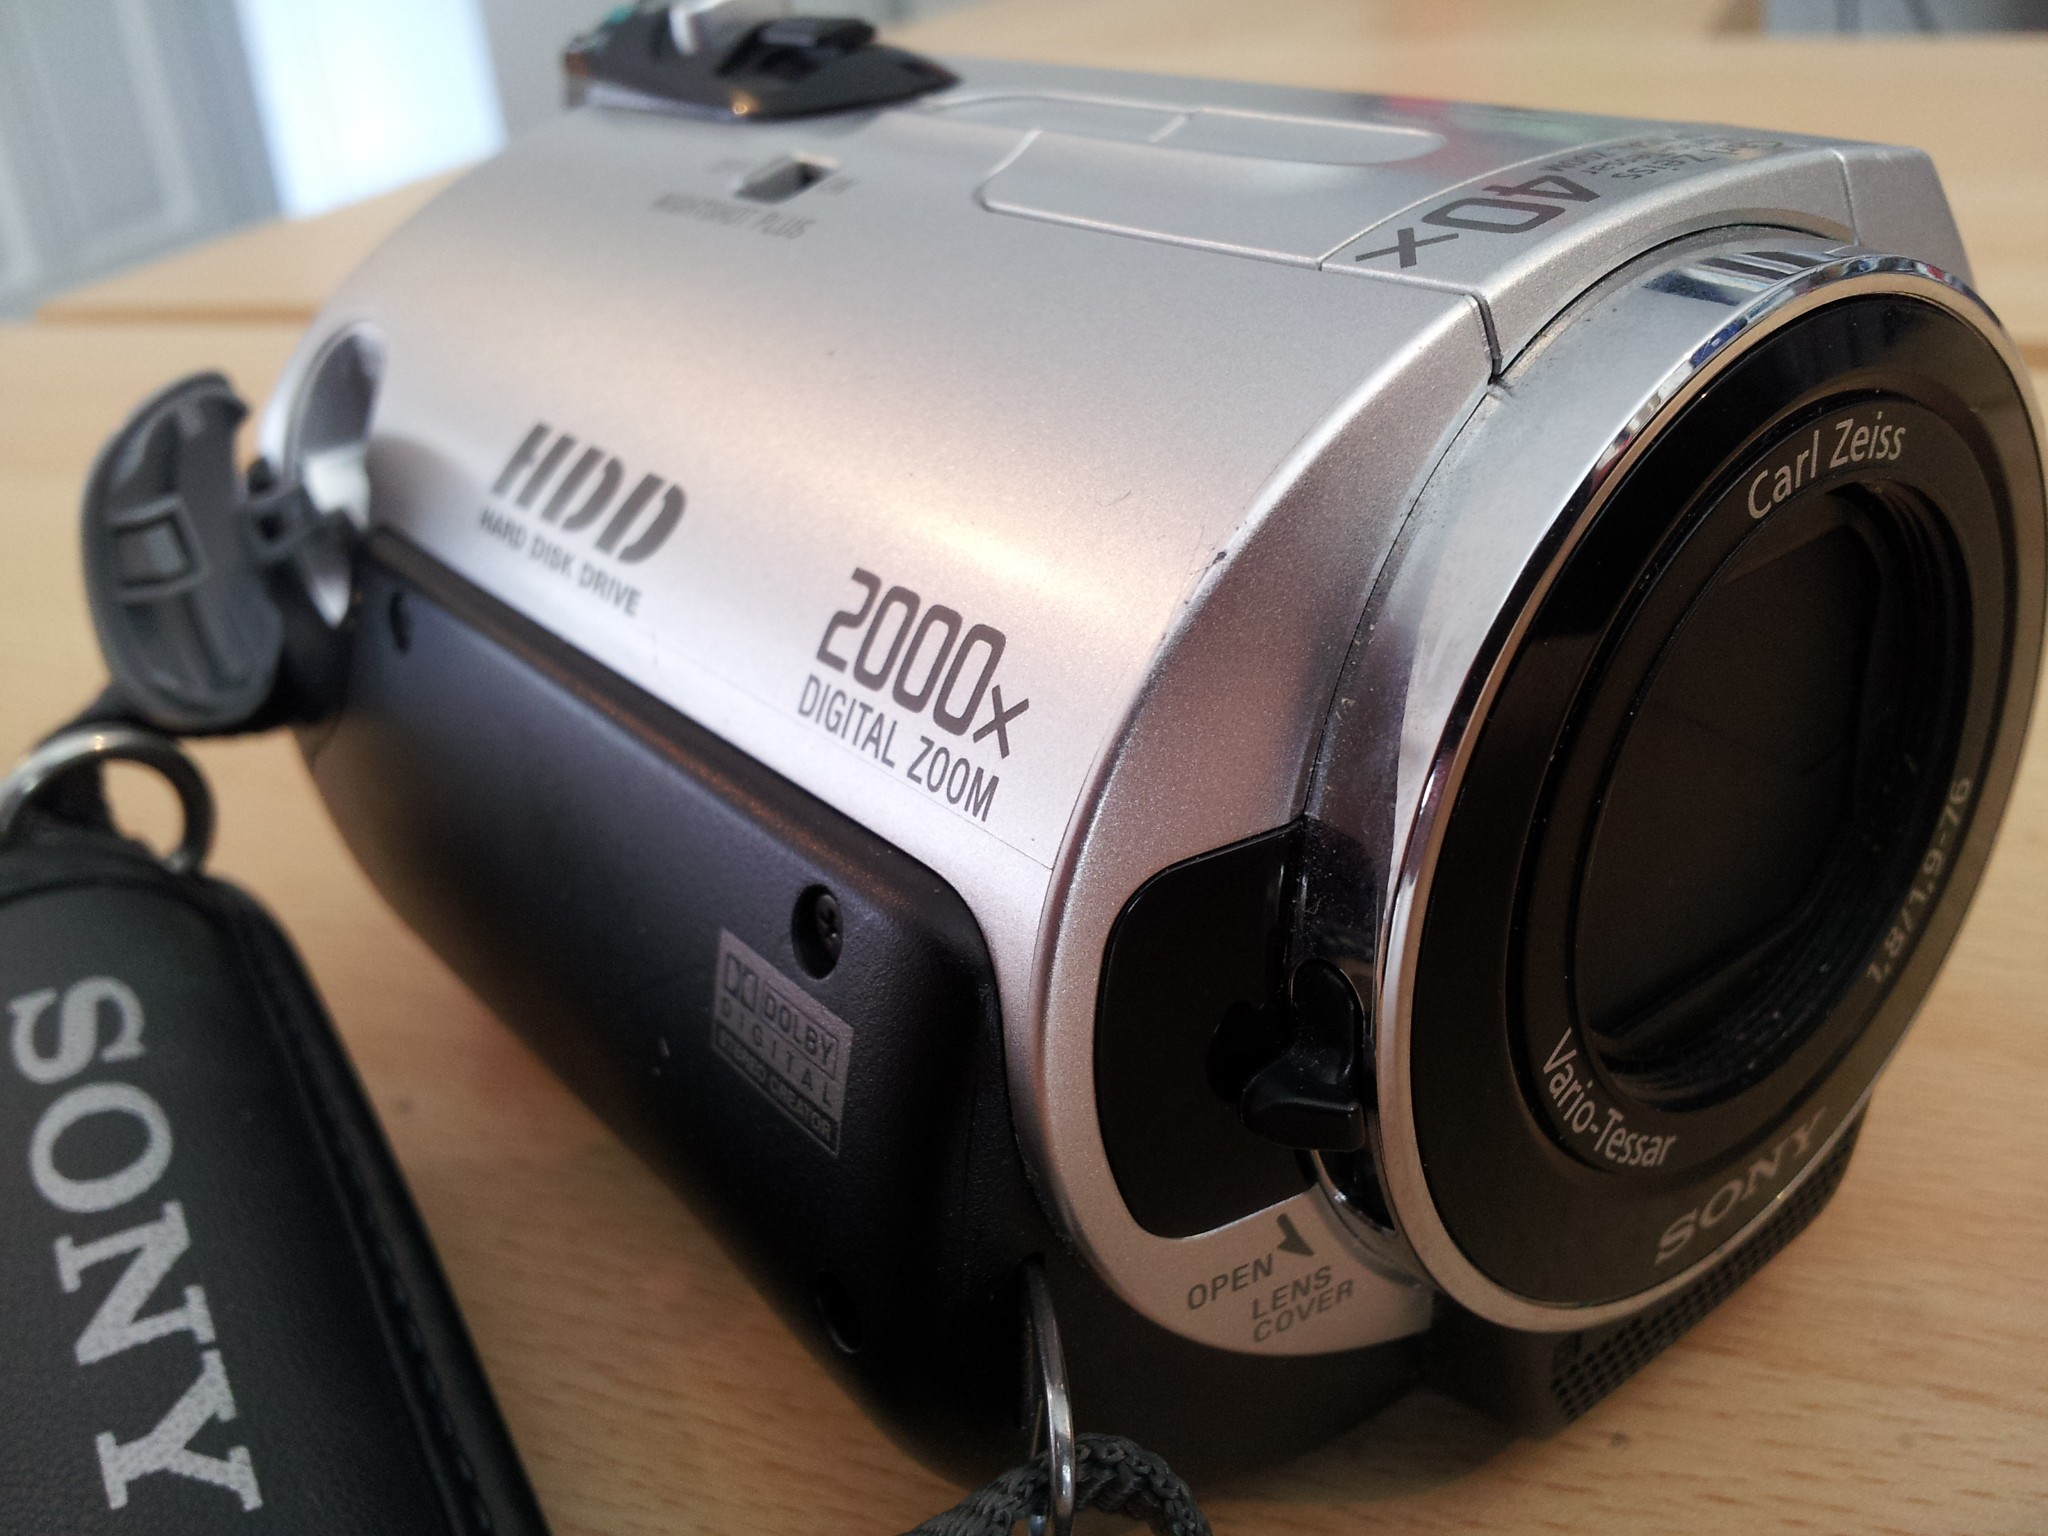 A Sony HDD Camcorder using High Definition AVCHD (H.264 MPEG4 or m2ts) video codecs to record to the hard disk. This one had accidental formatting on the hard drive so needed video recovering.